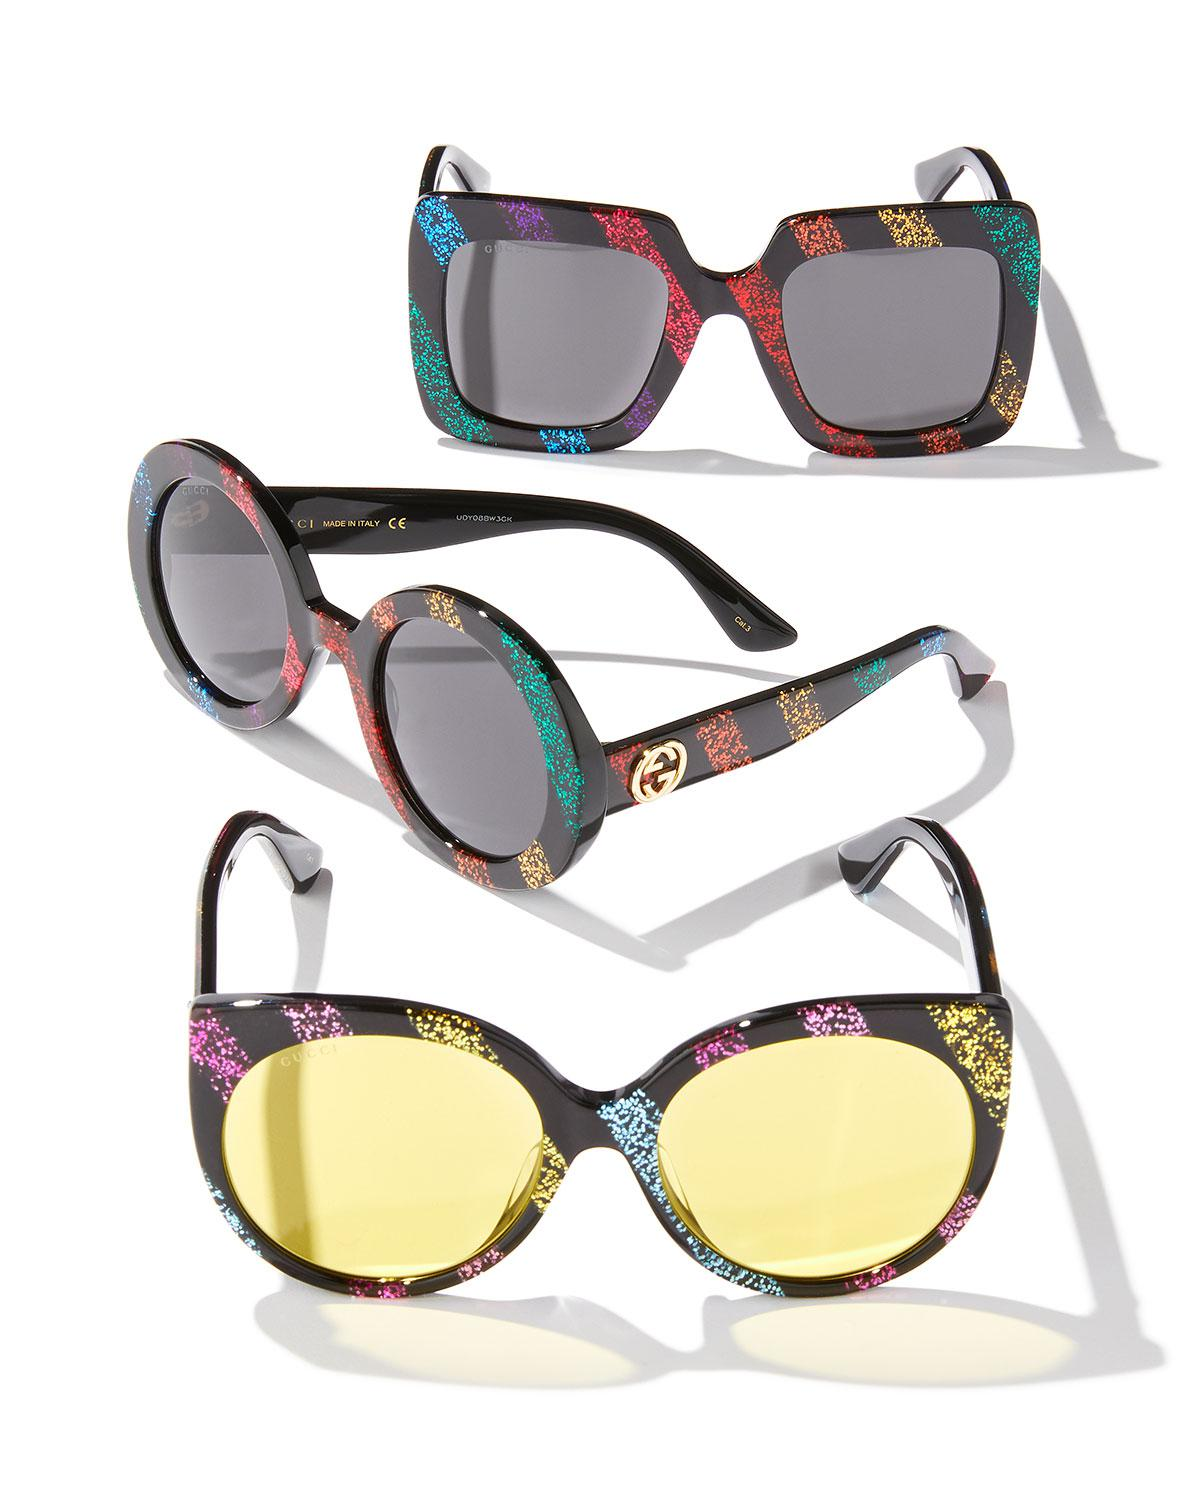 ee101d8301 Lyst - Gucci Glitter Striped Cat-eye Sunglasses